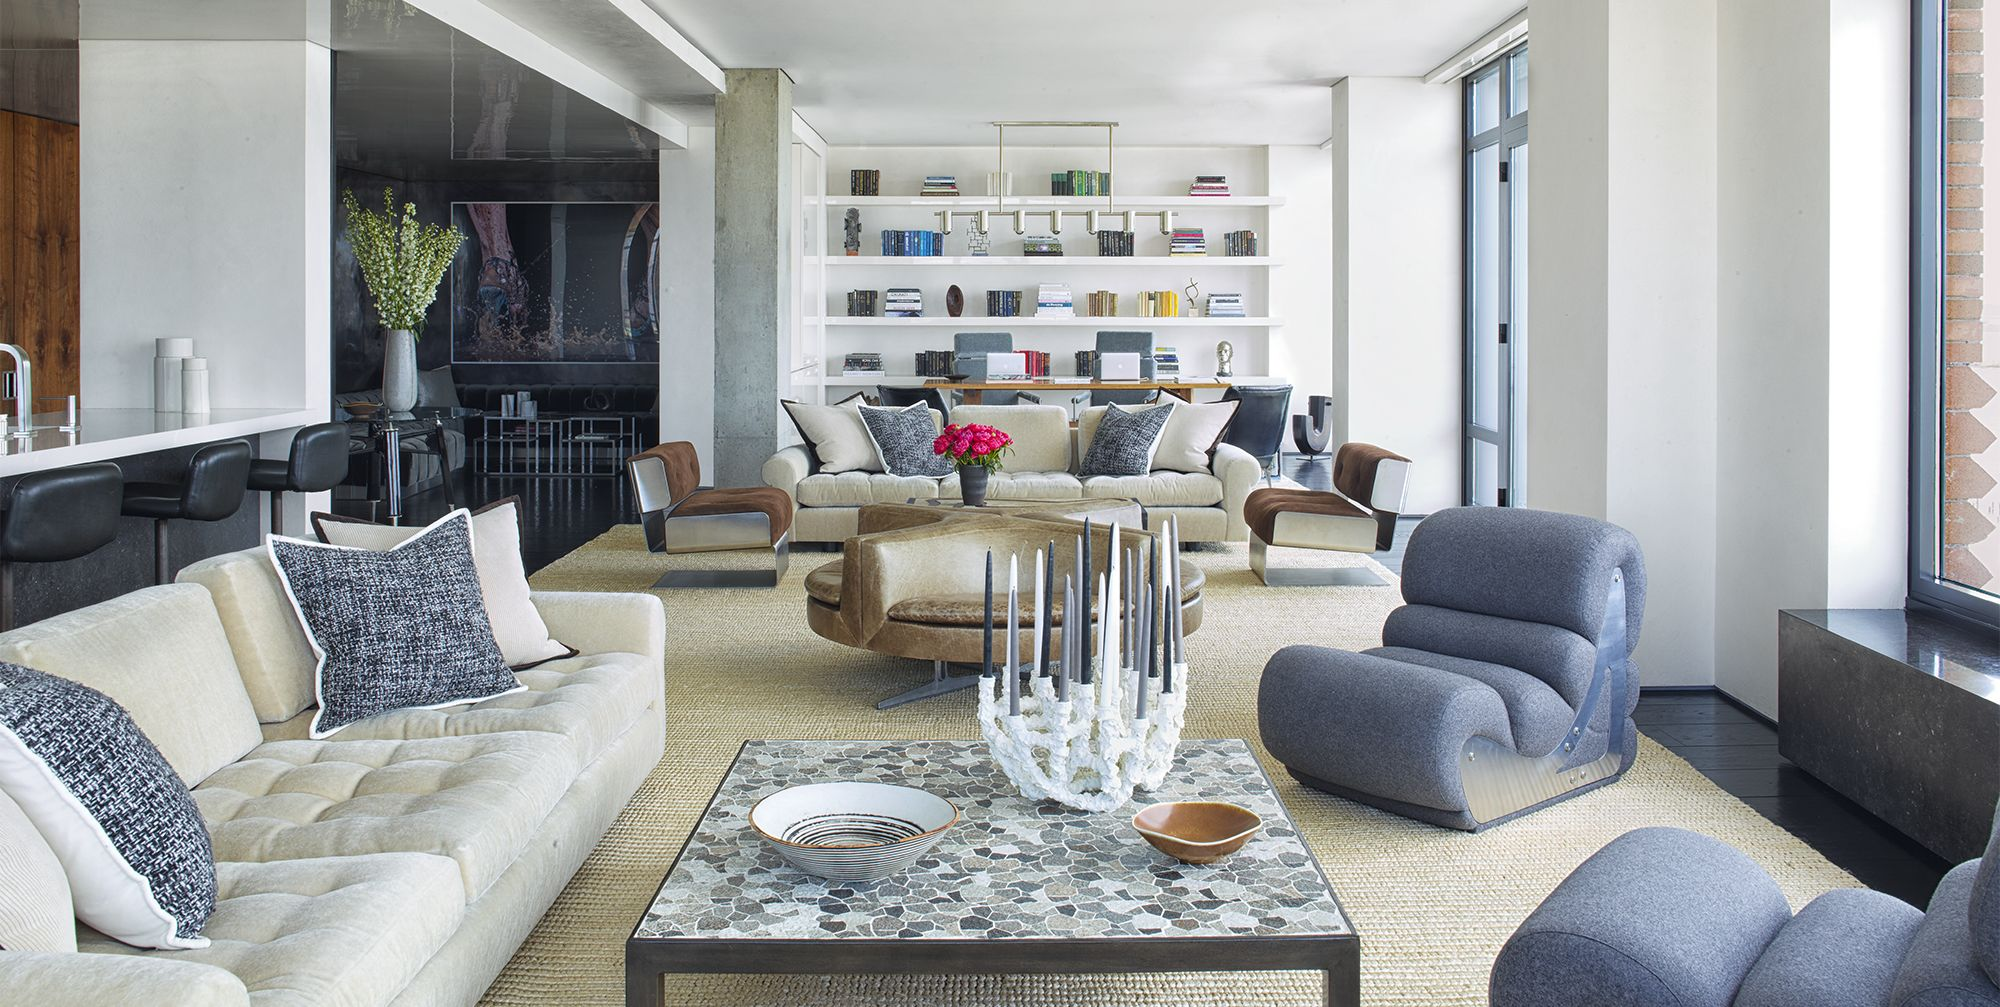 13 Best Paint Colors For Large Spaces According To Interior Designers